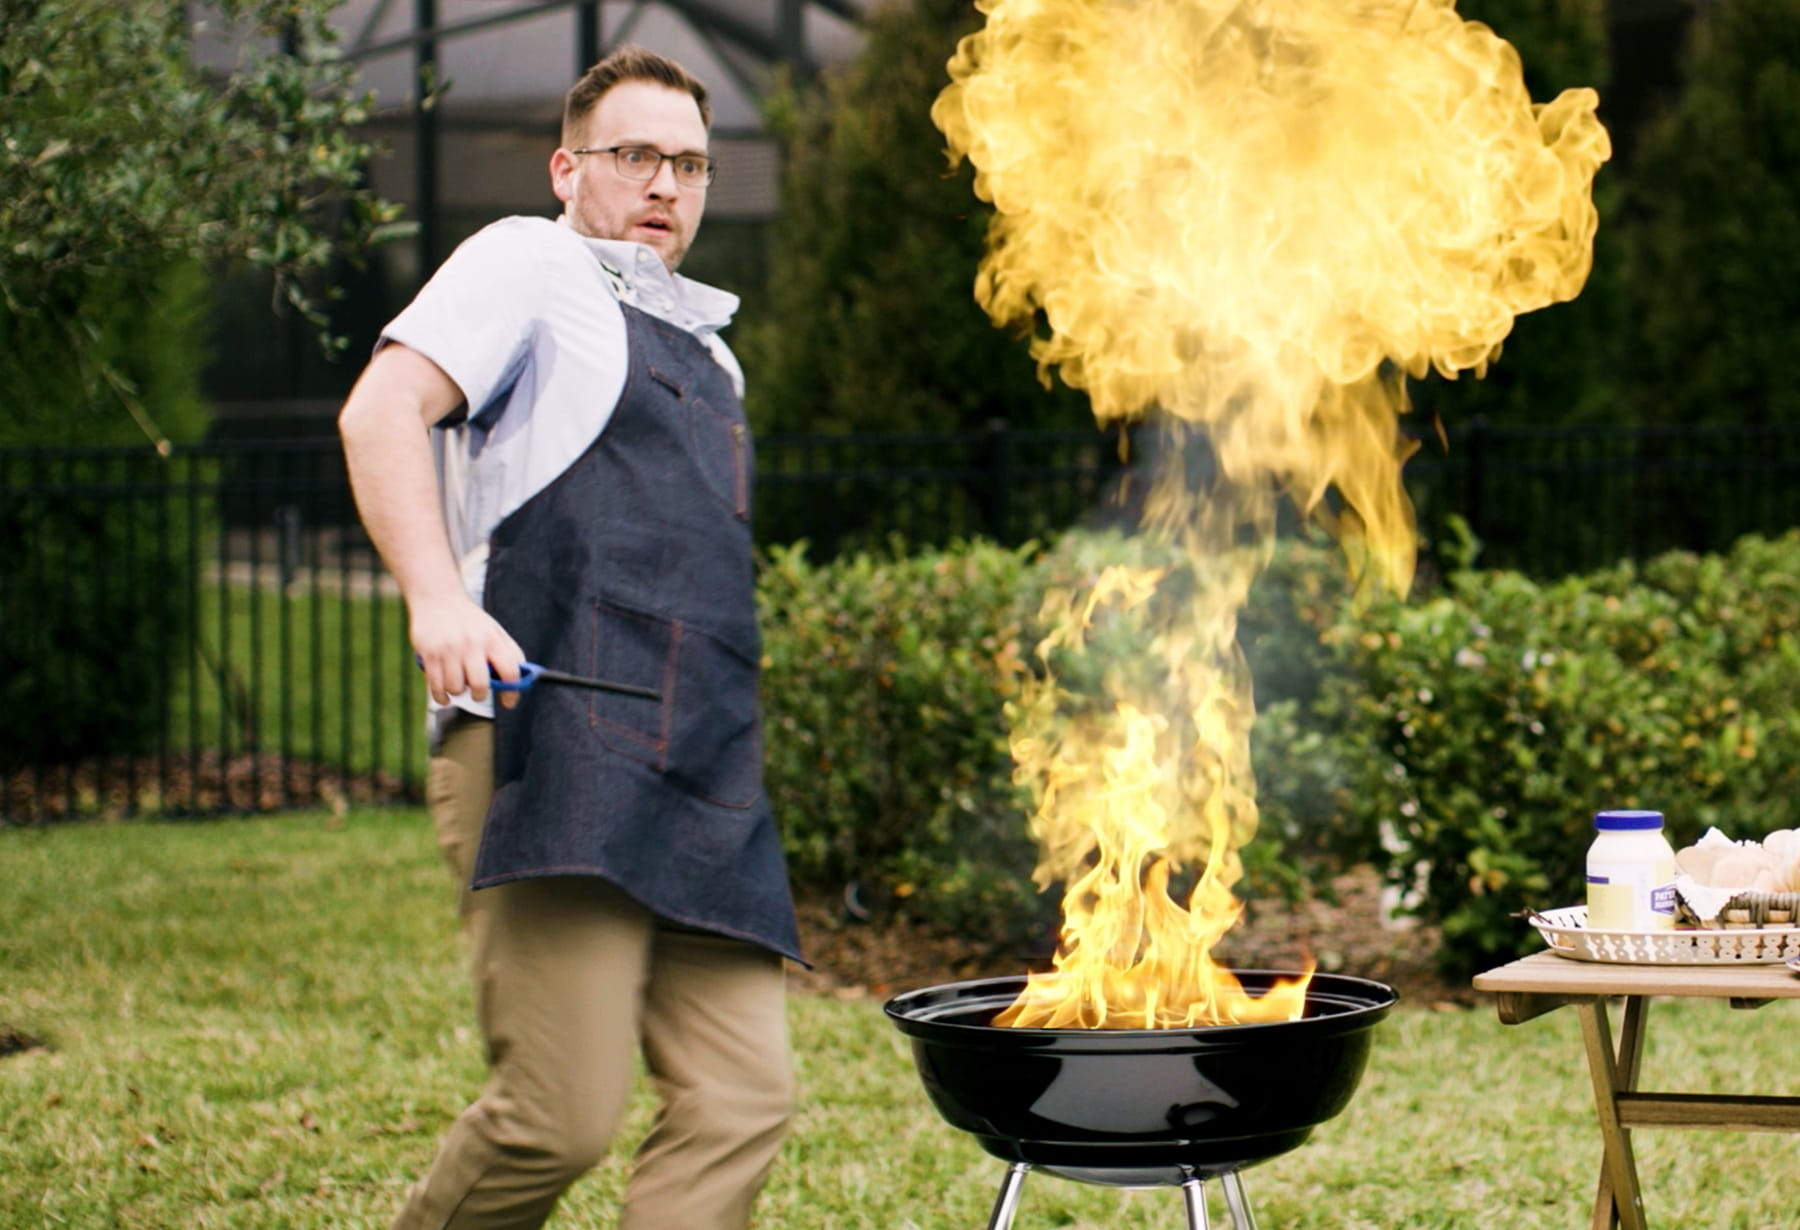 Photo of a man jumping away from an exploding barbecue grill